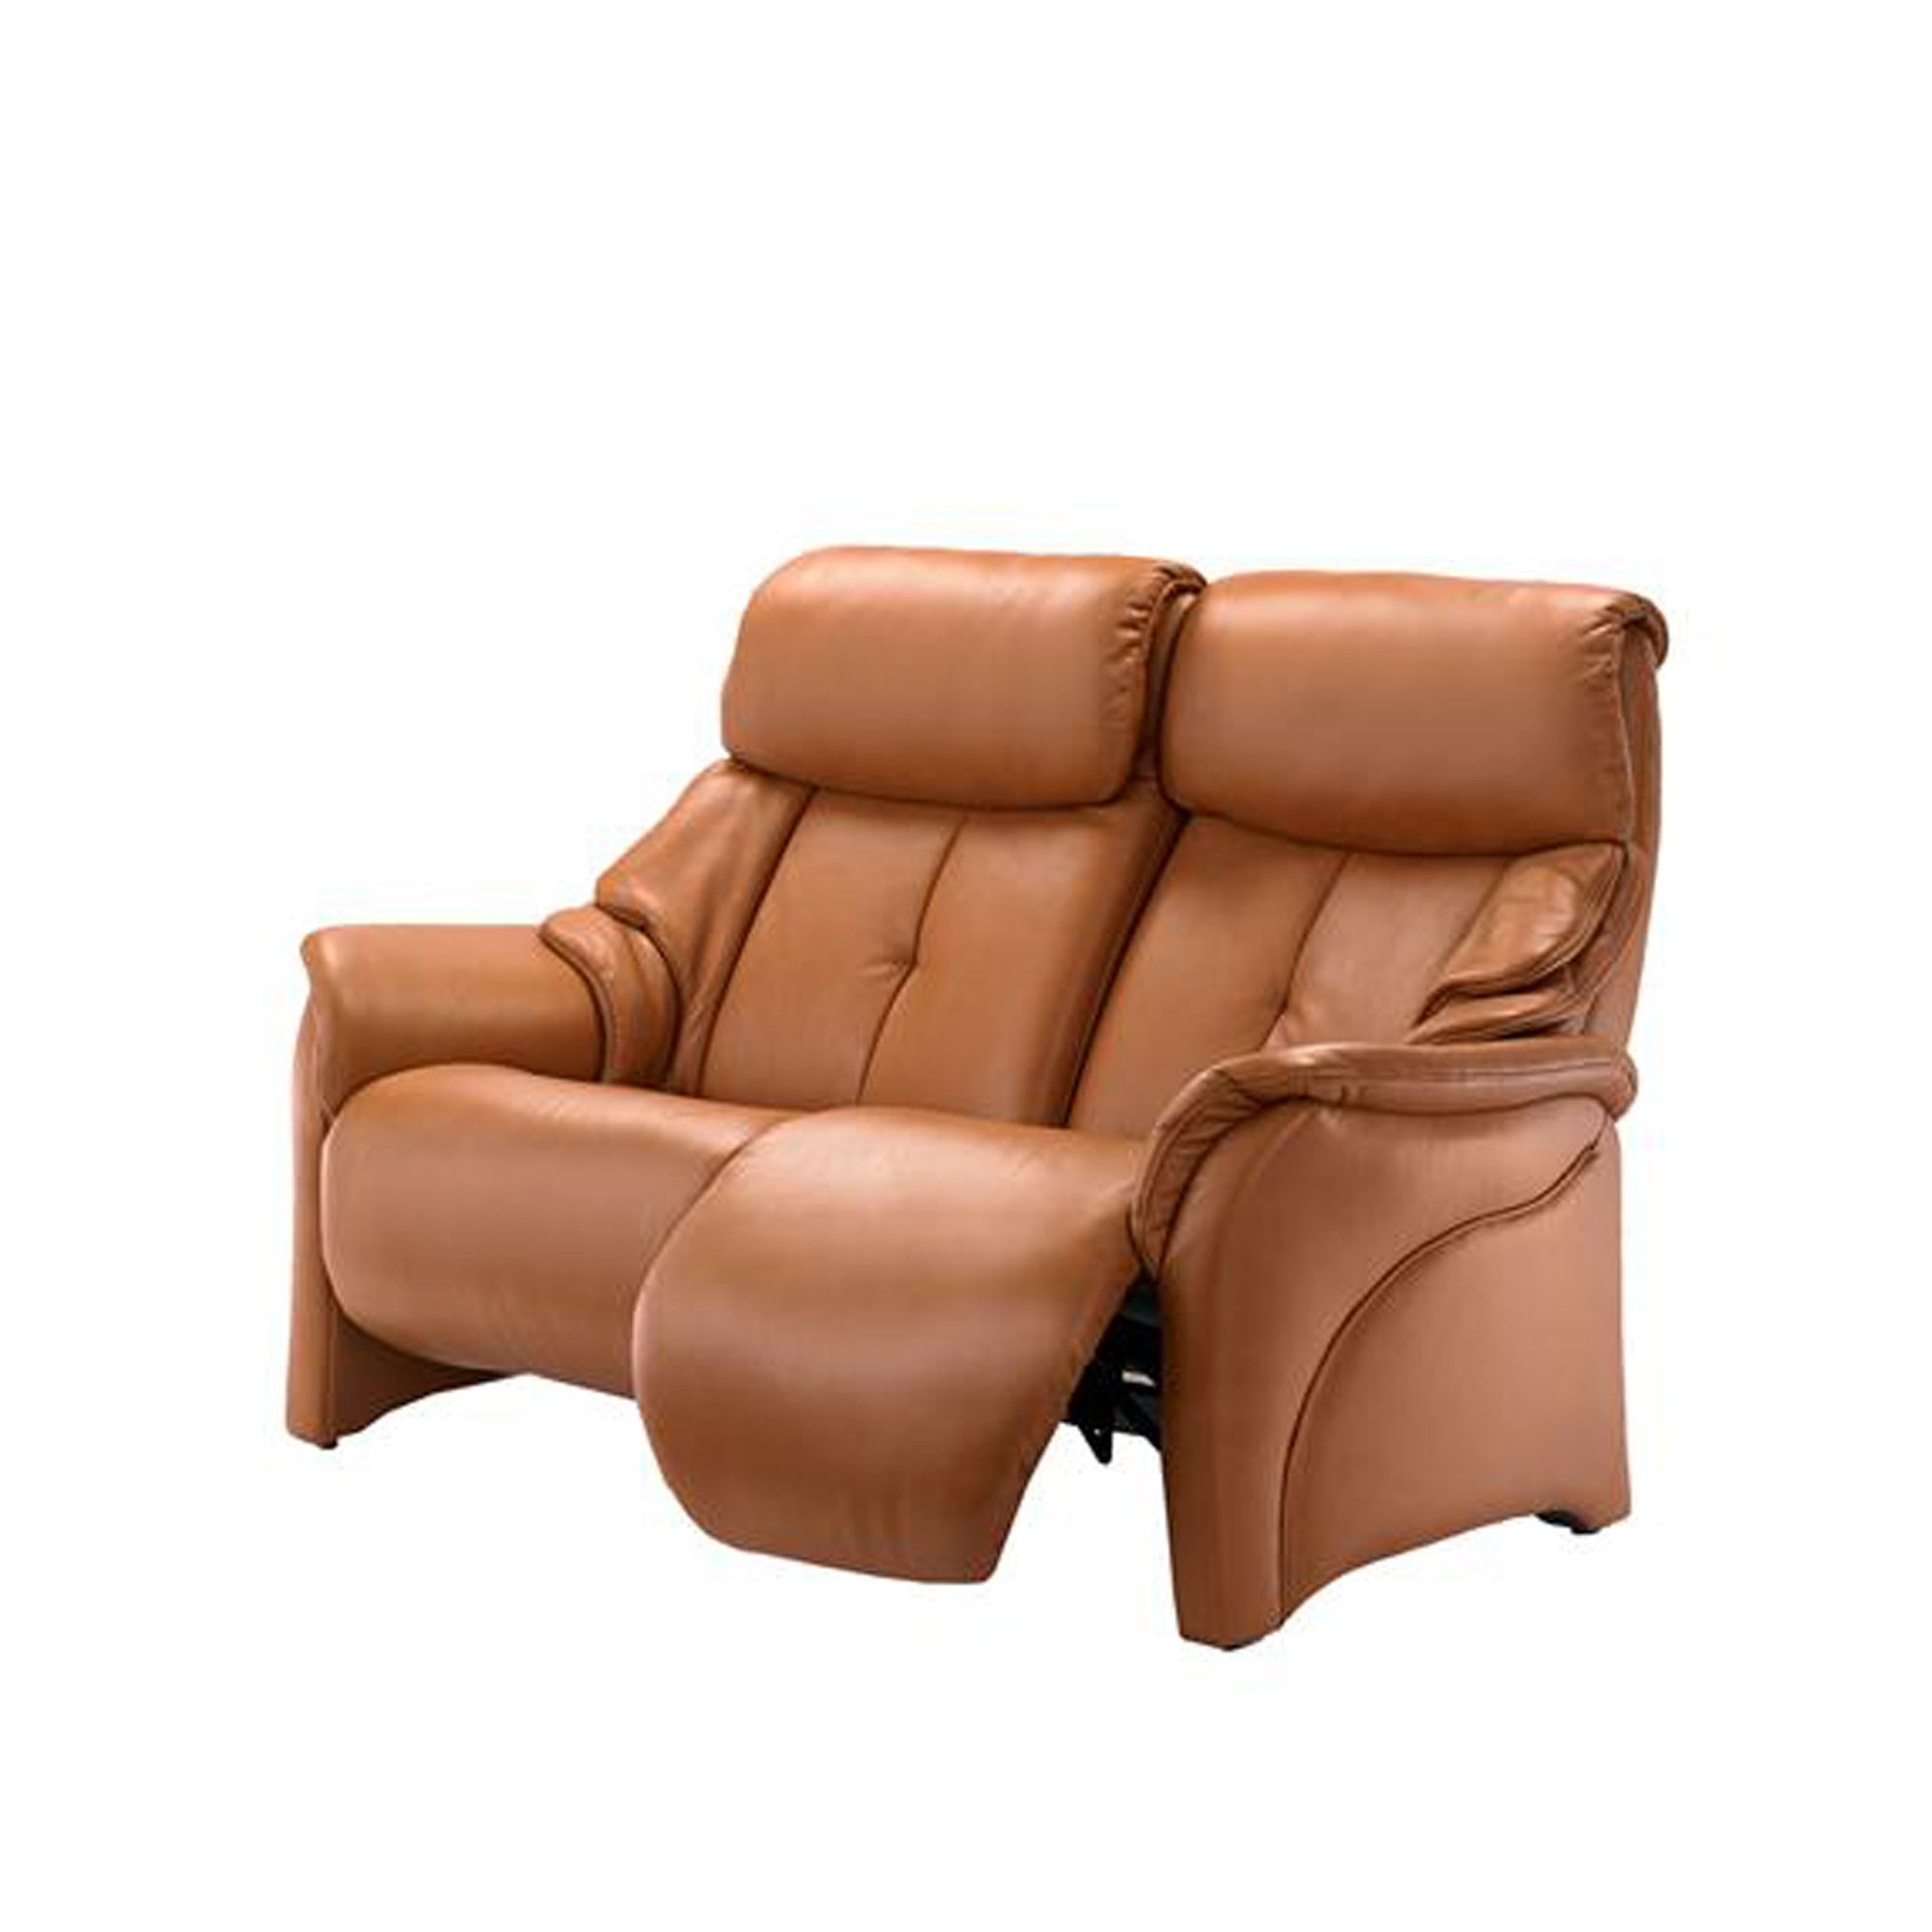 2019 Recliner Sofa Chairs In Himolla Chester 2.5 Seater Electric Recliner Sofa – All Sofas (Gallery 17 of 20)